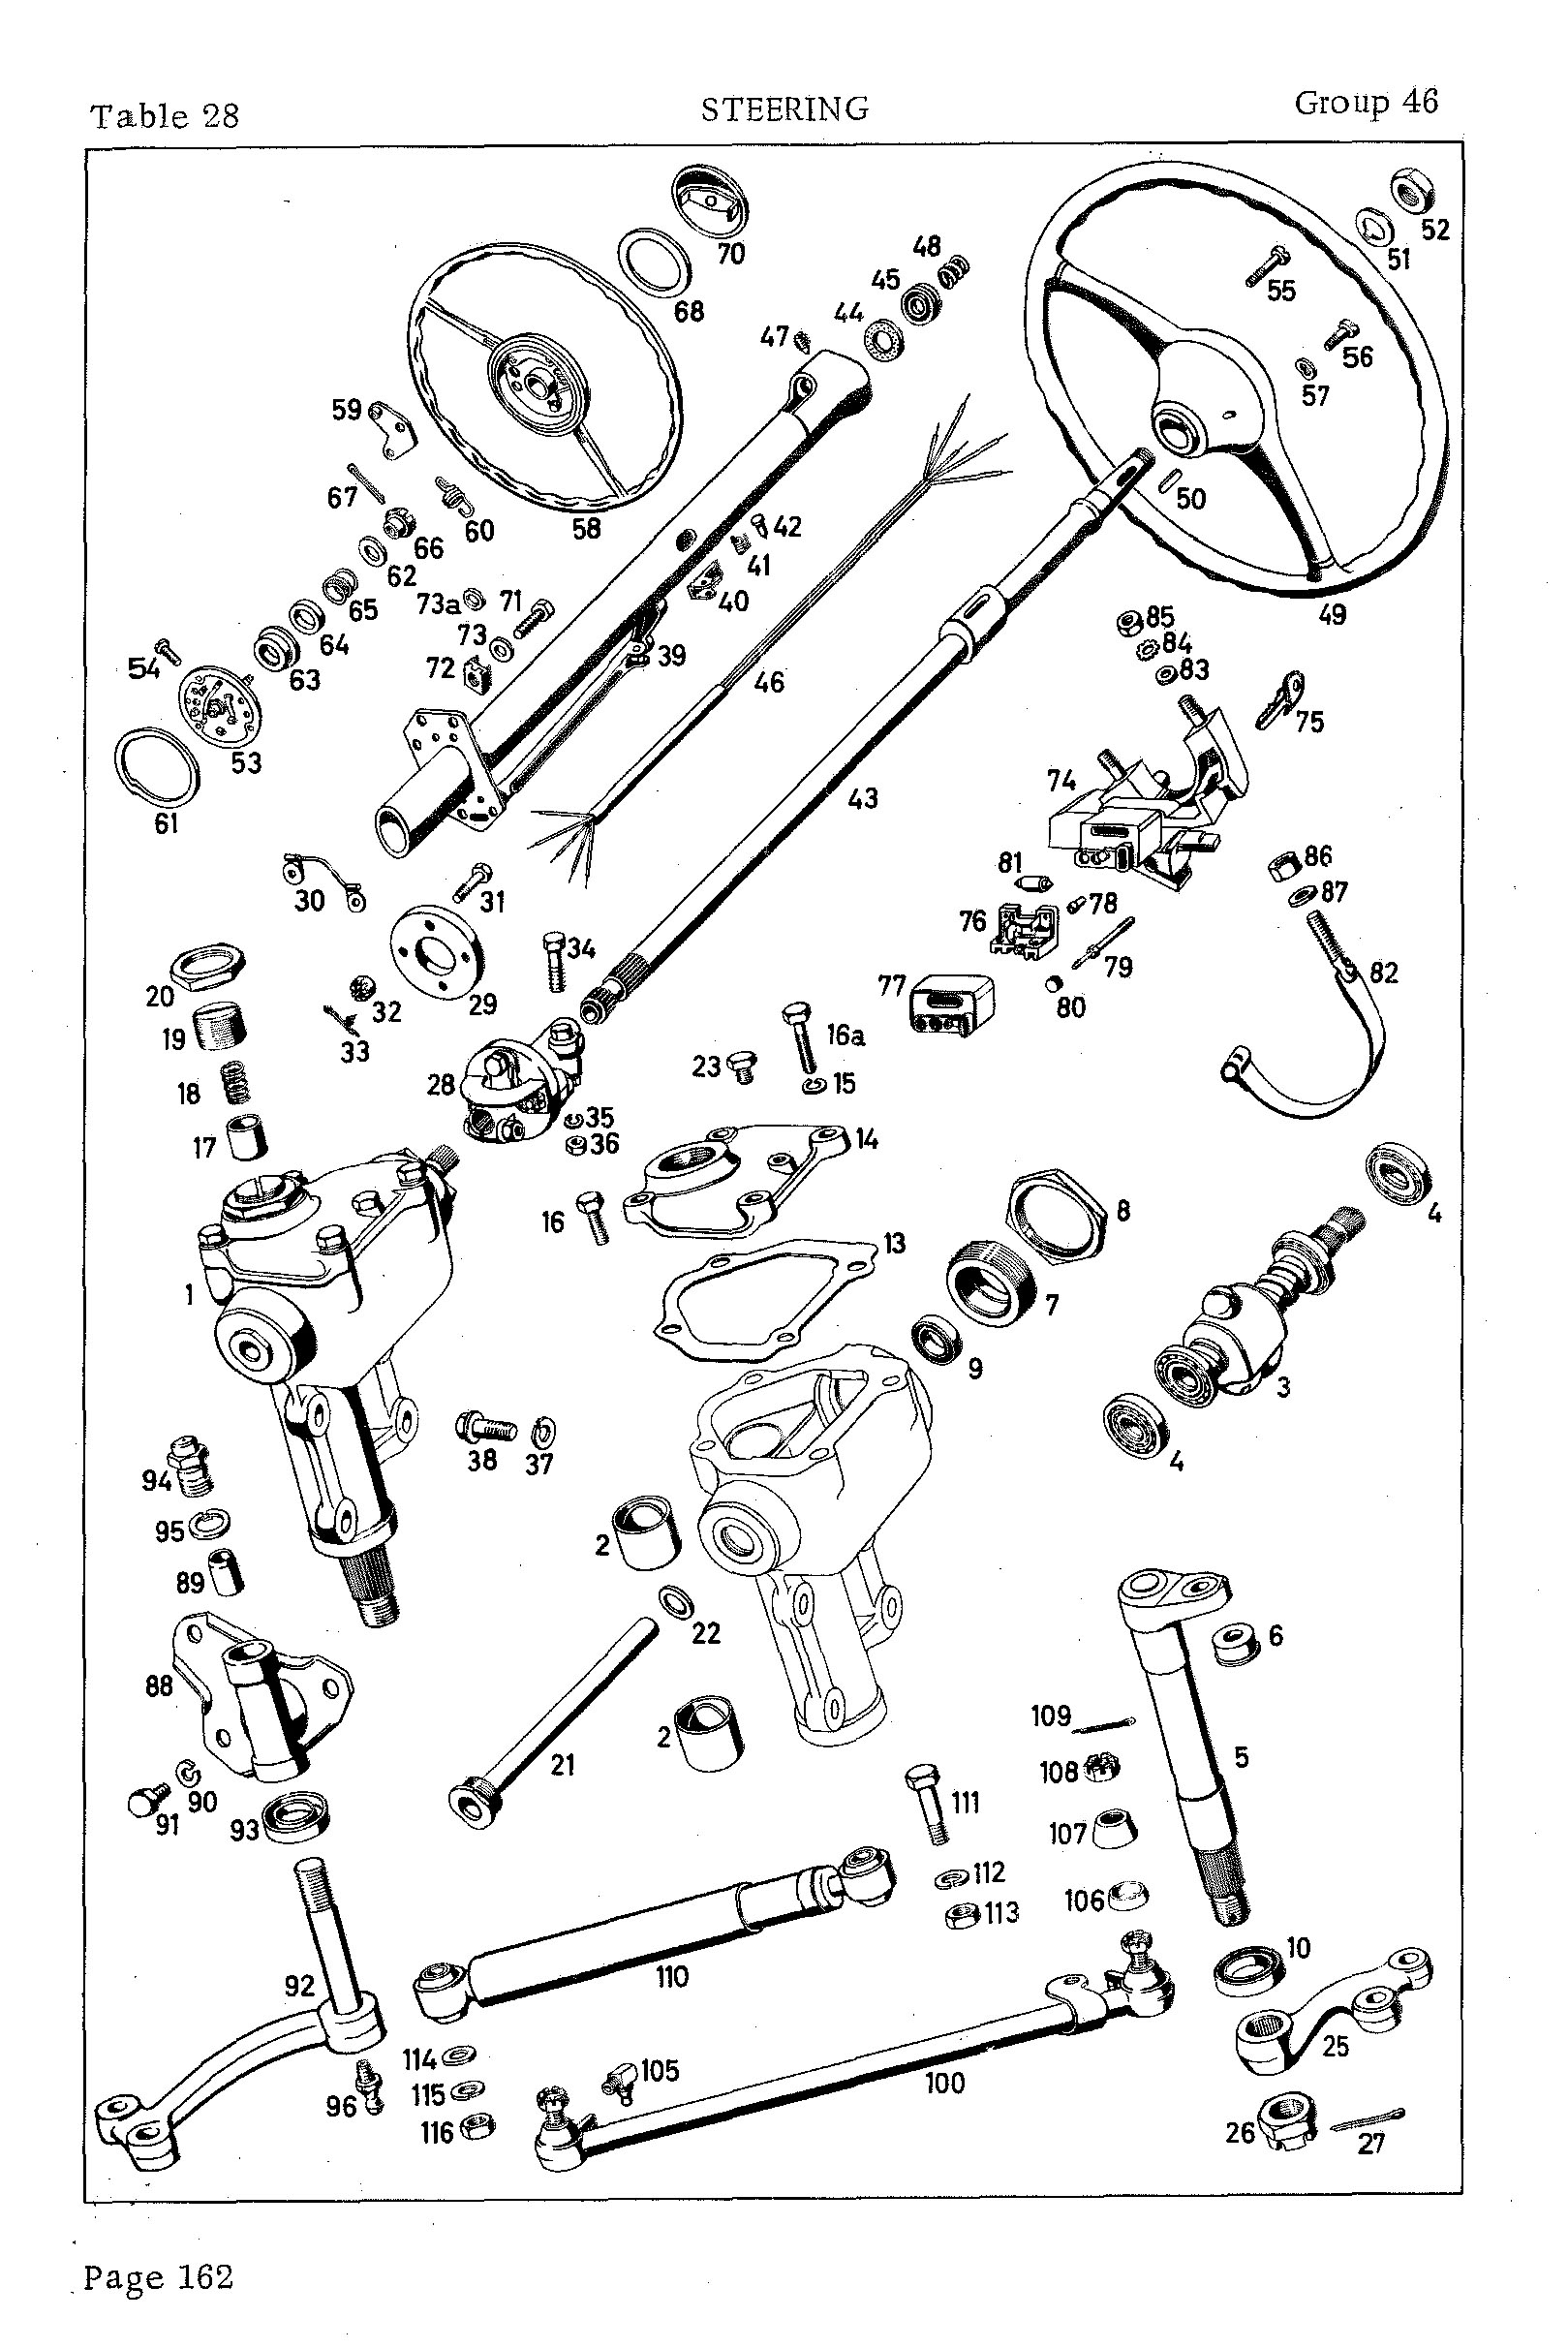 Ignition coil also honda cb750 sohc engine diagram also porsche 928 wiring diagram furthermore porsche 928